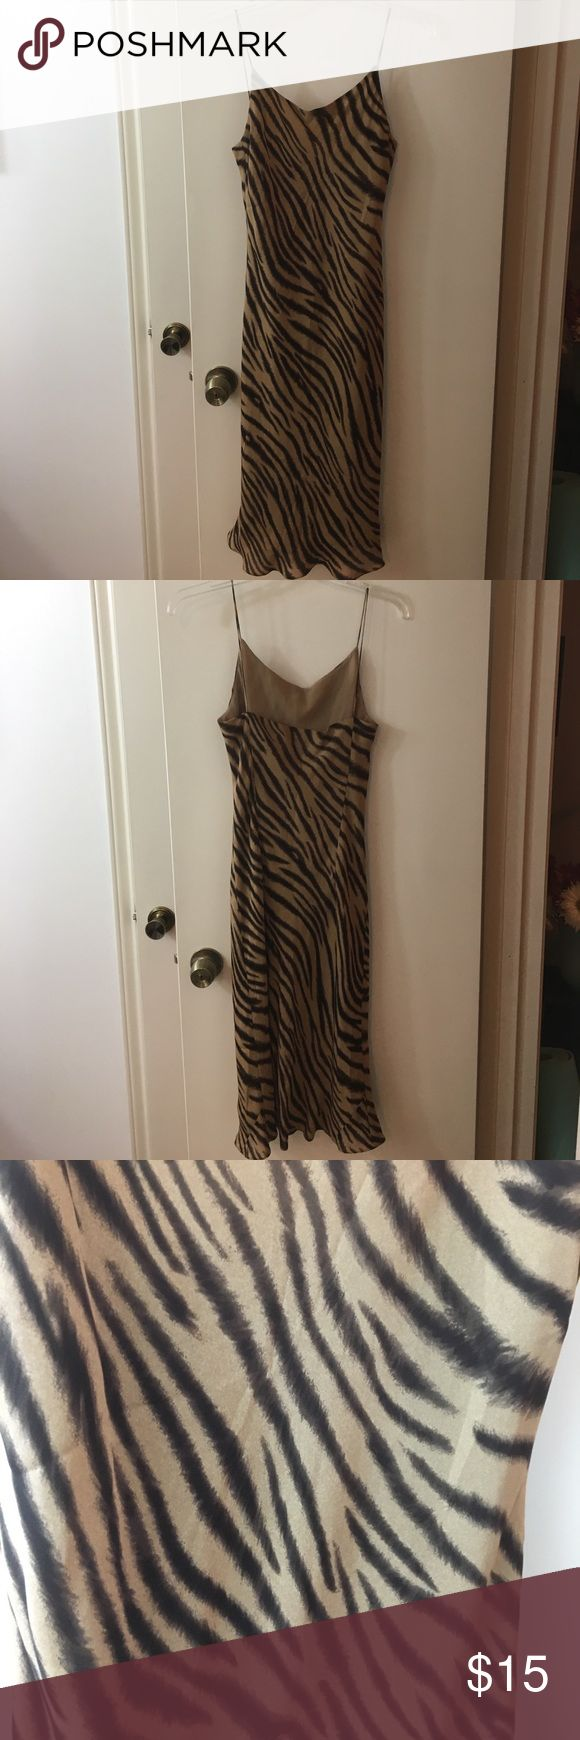 Tan zebra pattern dress Can be worn out for a night out with the girls or paired with a blazer for work. Excellent condition. Polyester material Jones New York Dresses